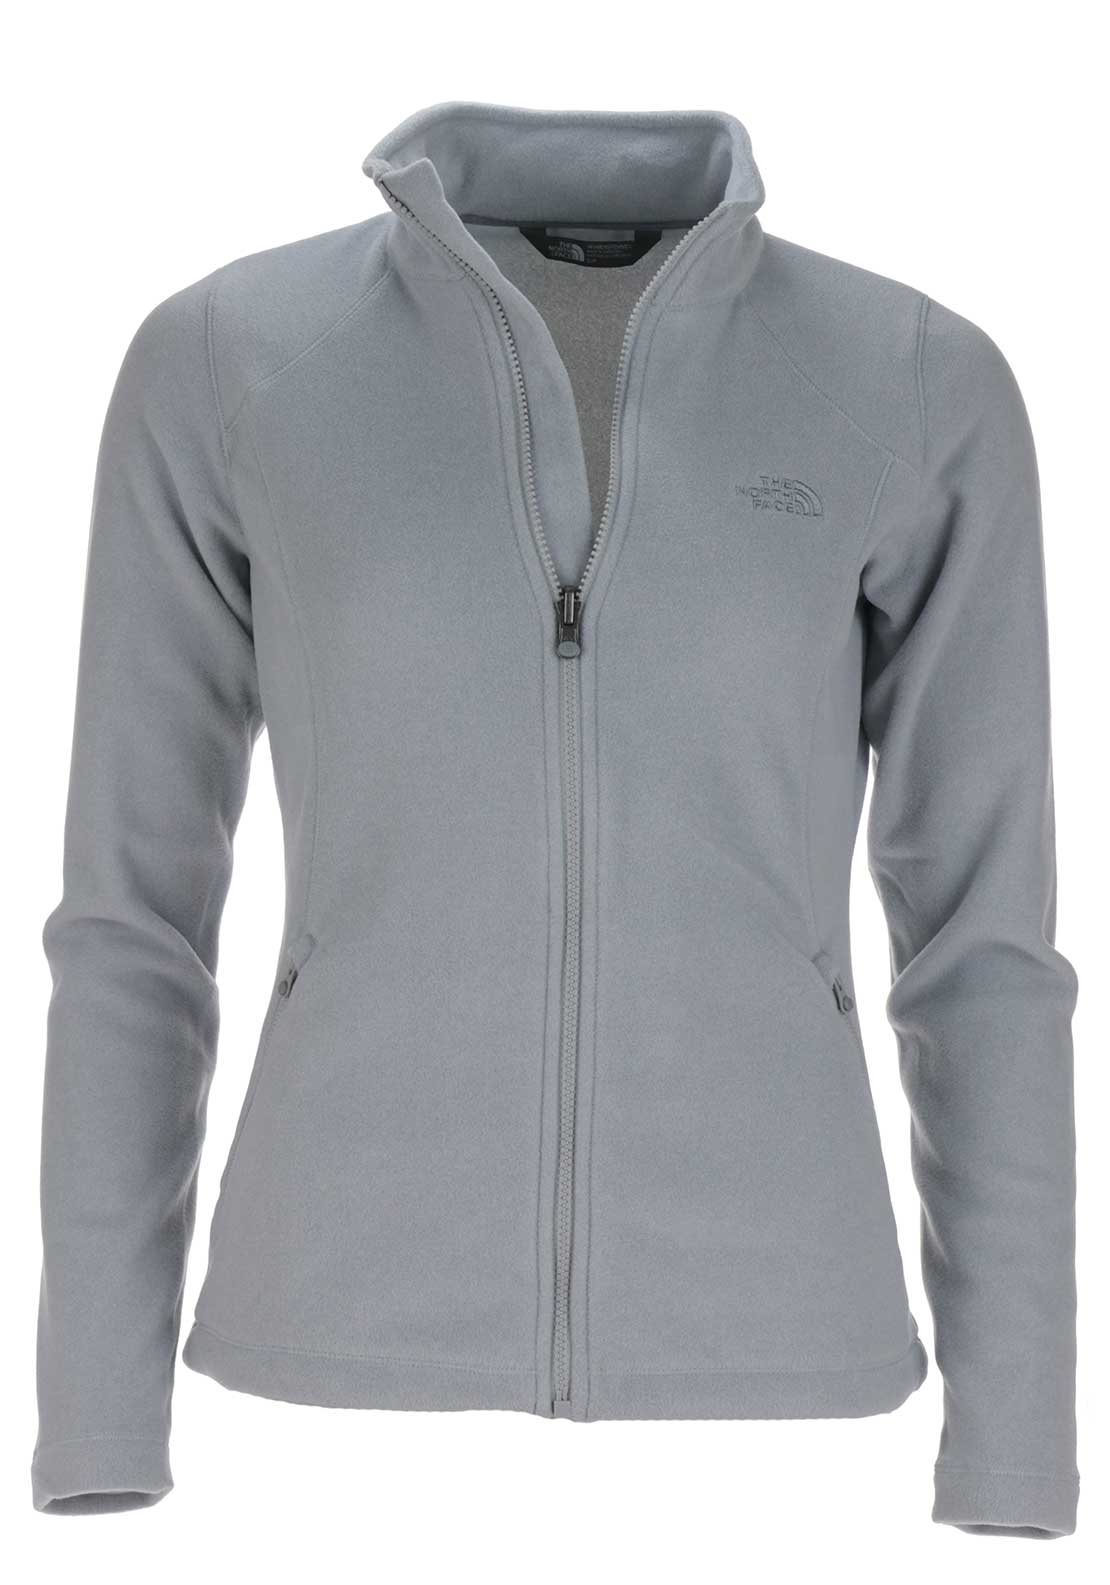 The North Face Womens 100 Glacier Full Zip Fleece Jacket, Light Grey Heather